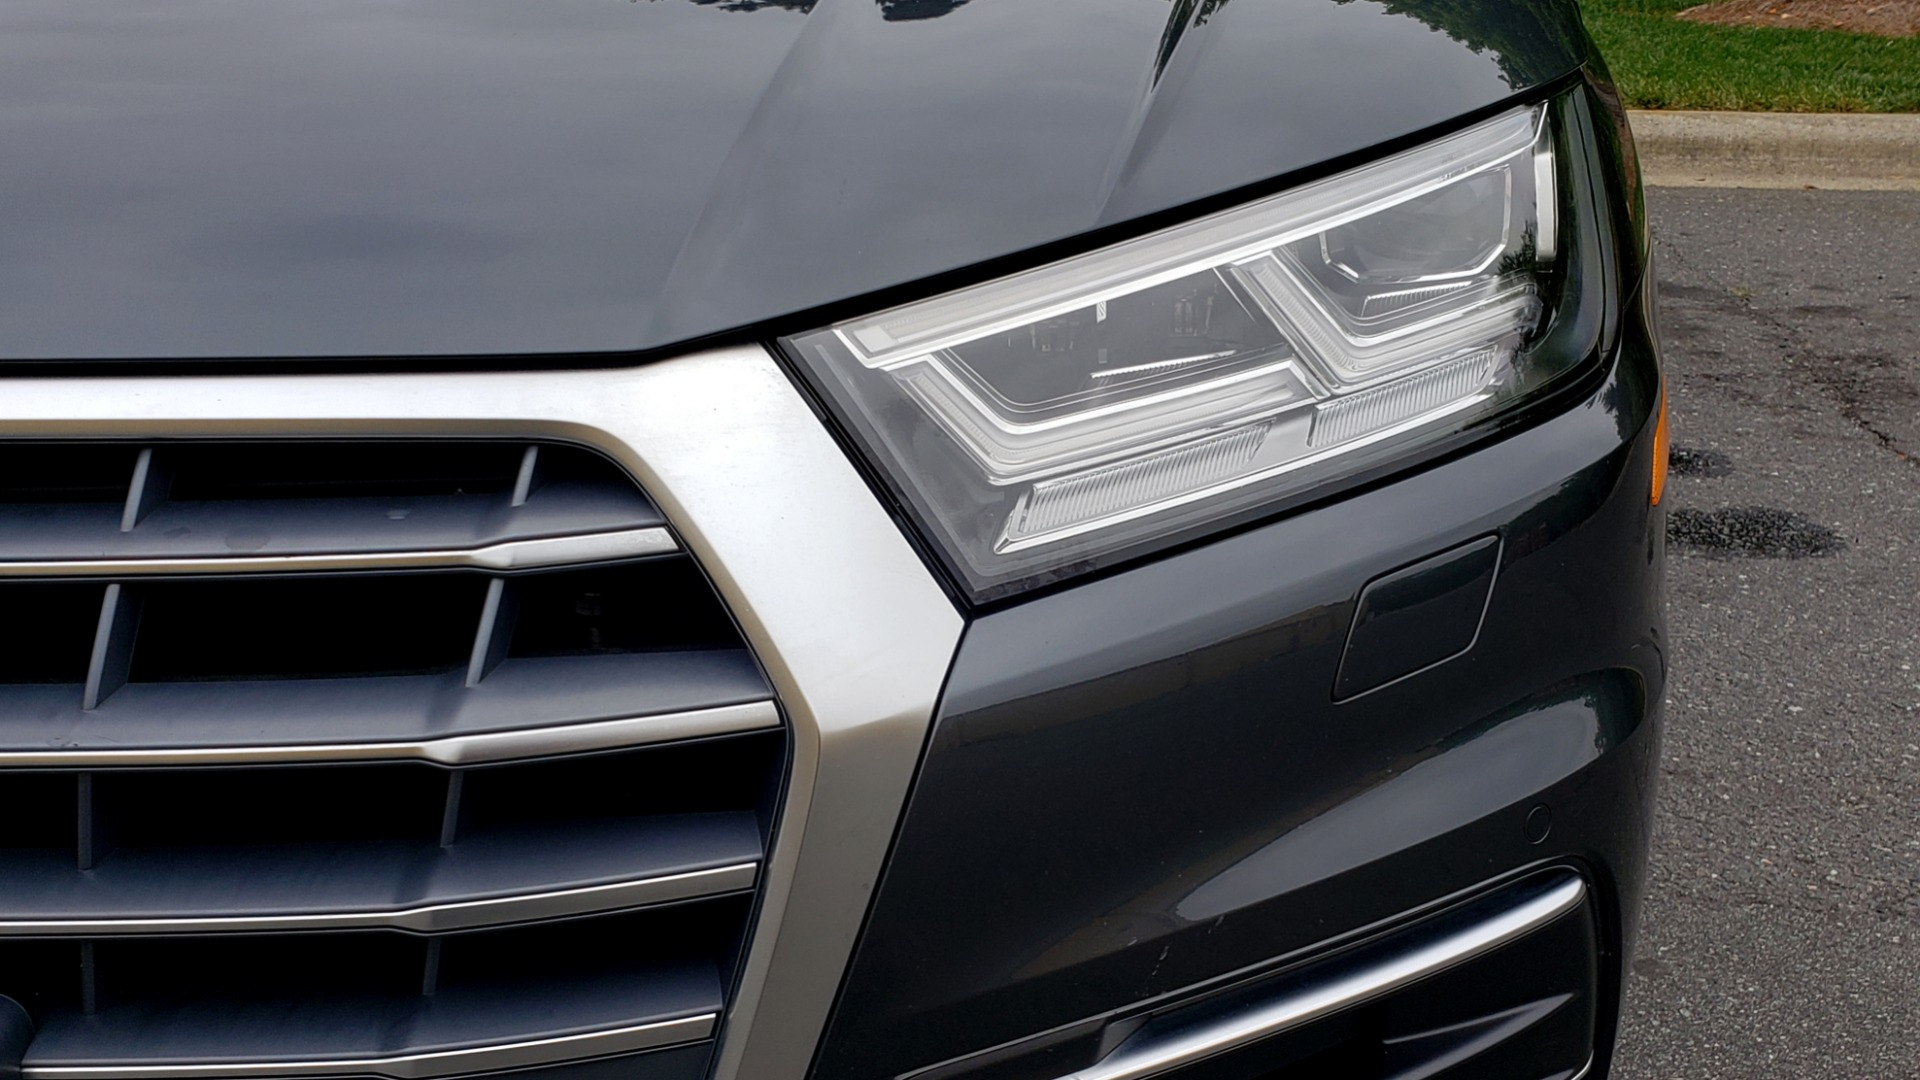 Used 2018 Audi Q5 PREMIUM PLUS / S-TRONIC / NAV / PANO-ROOF / PARK SYS PLUS for sale Sold at Formula Imports in Charlotte NC 28227 23